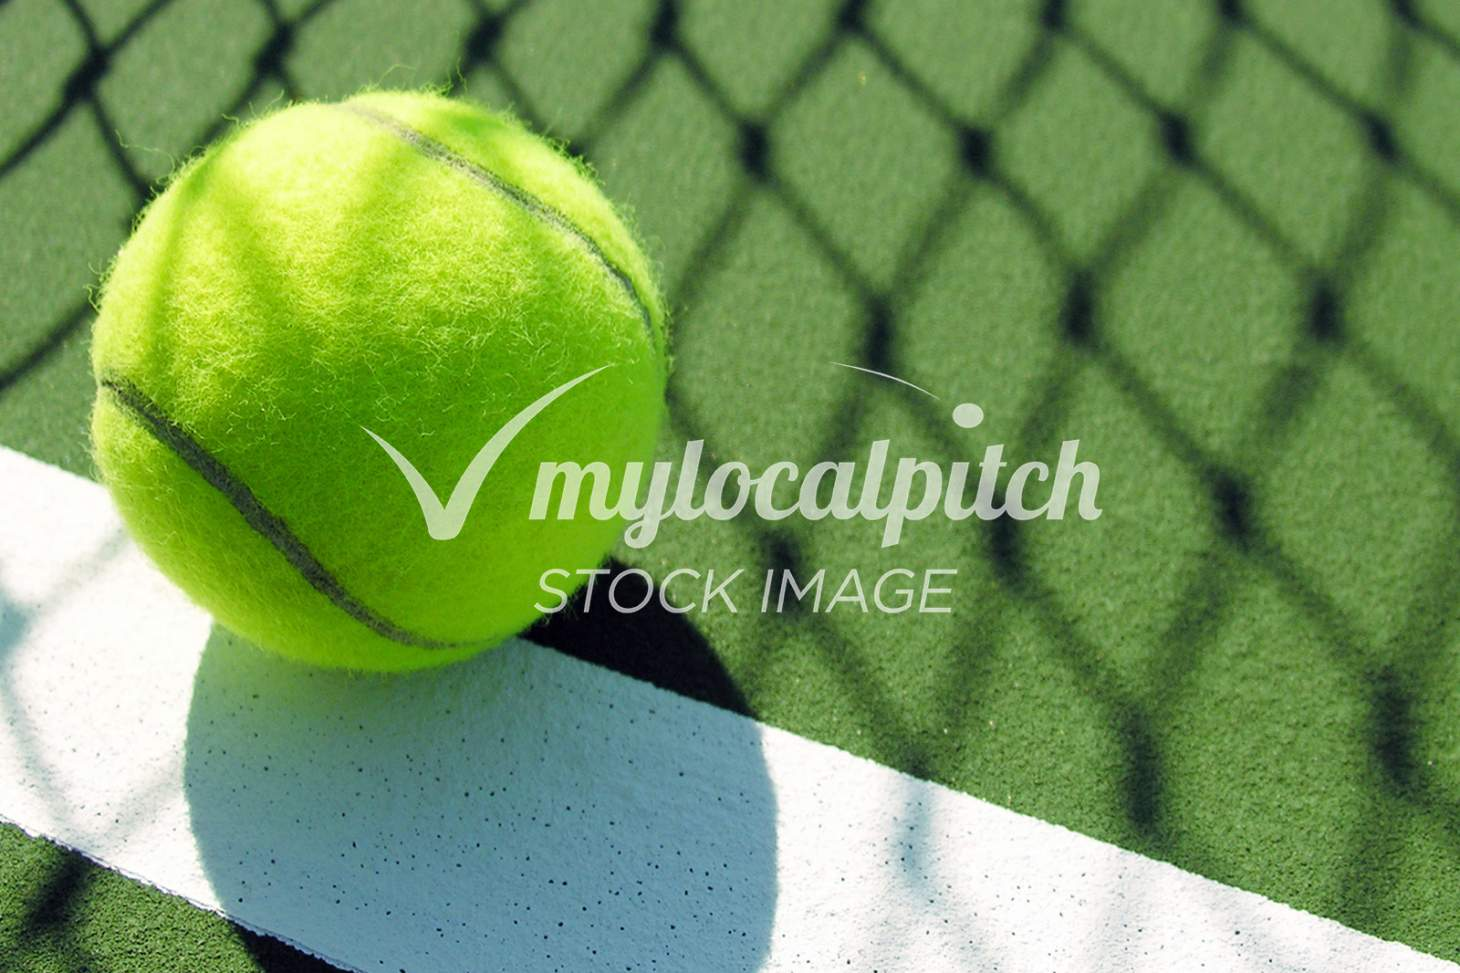 Withdean Sports Complex Outdoor | Hard (macadam) tennis court